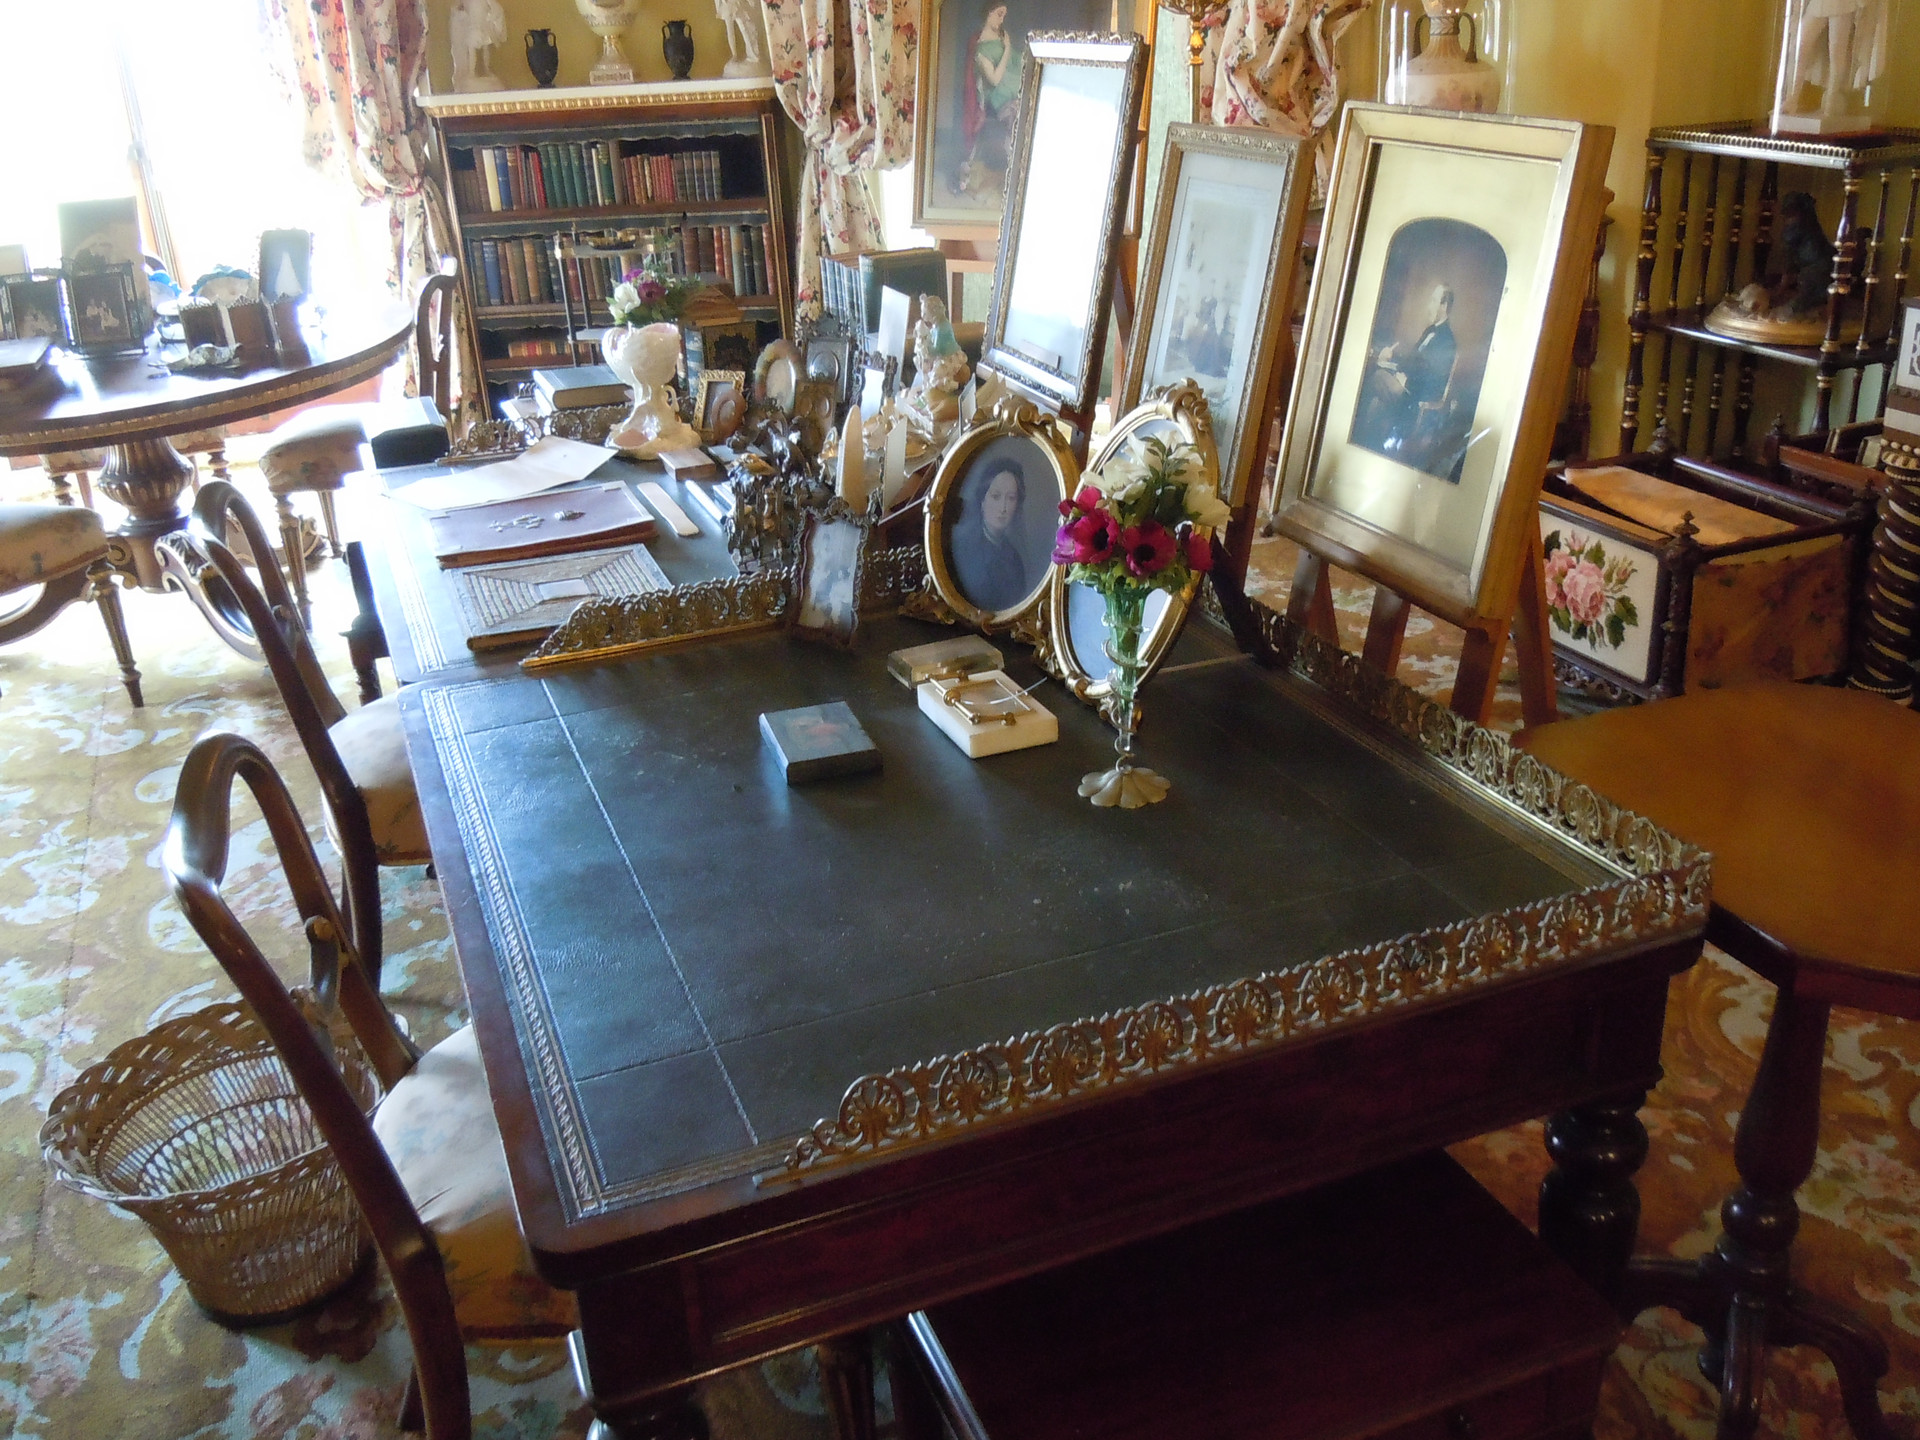 Queen Victoria's study at Osborne house